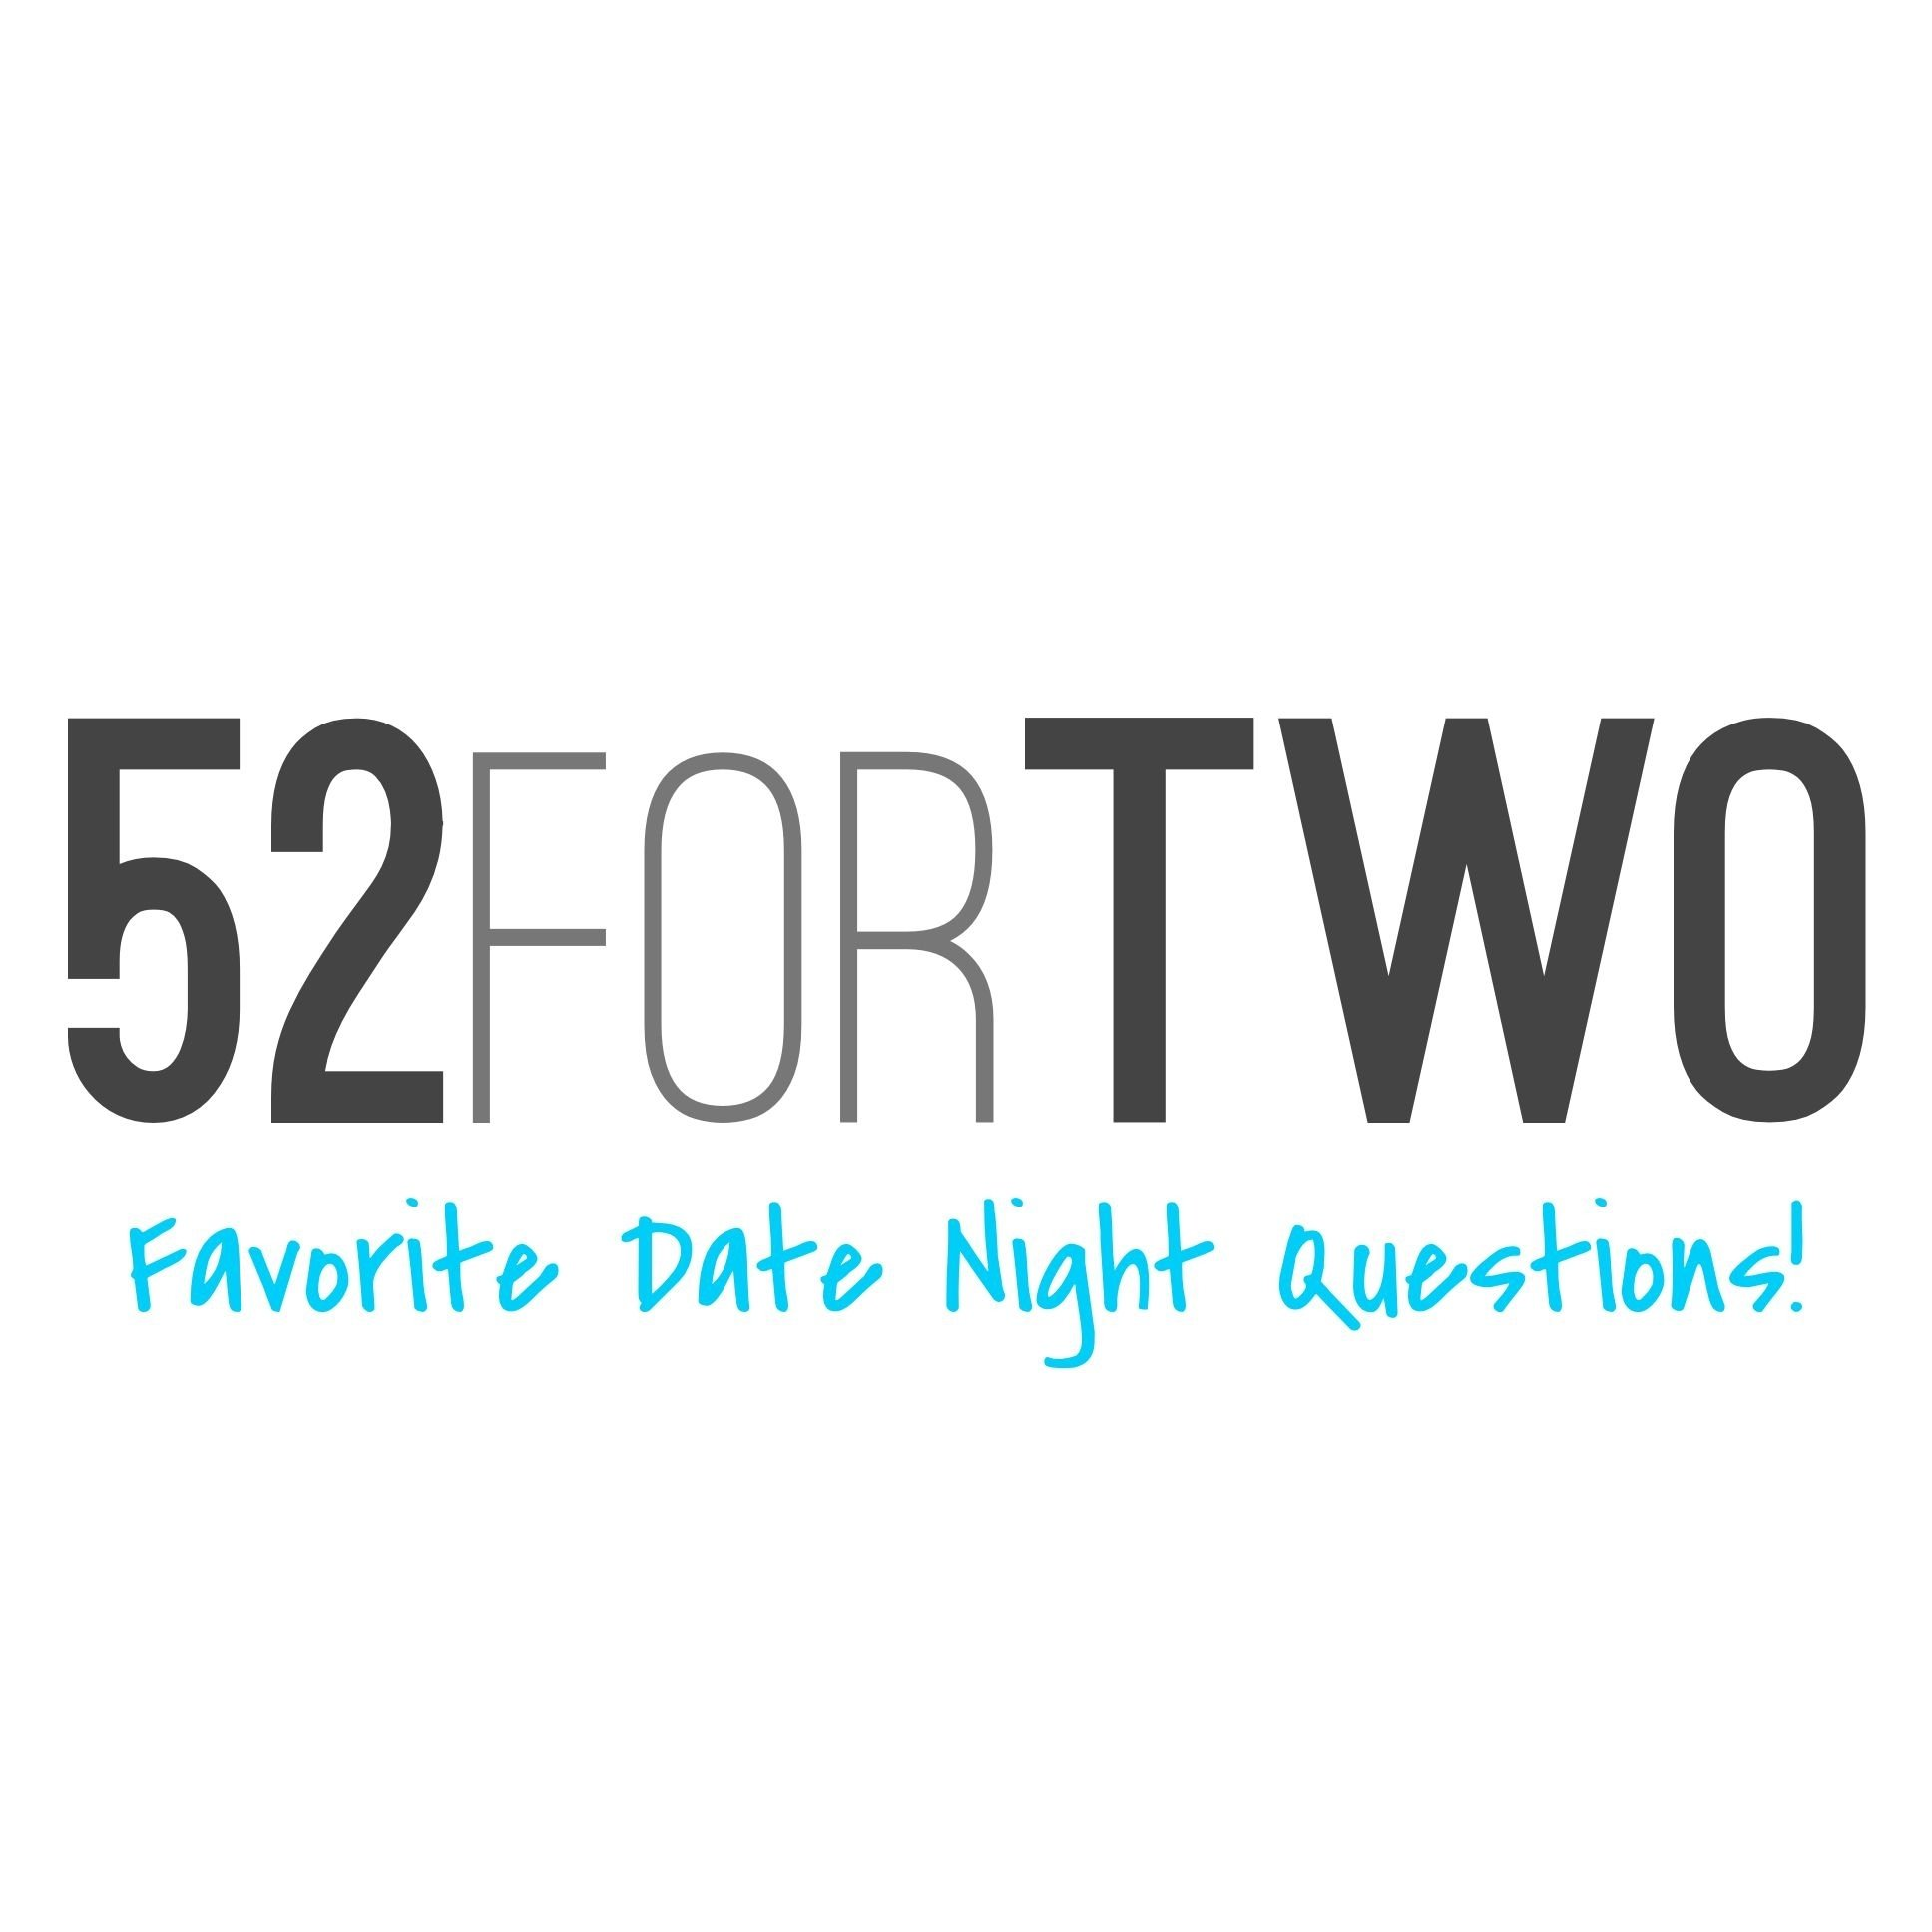 10 Most Popular Romantic Date Ideas In Orlando 52 date night questions love e29da4 pinterest craft 1